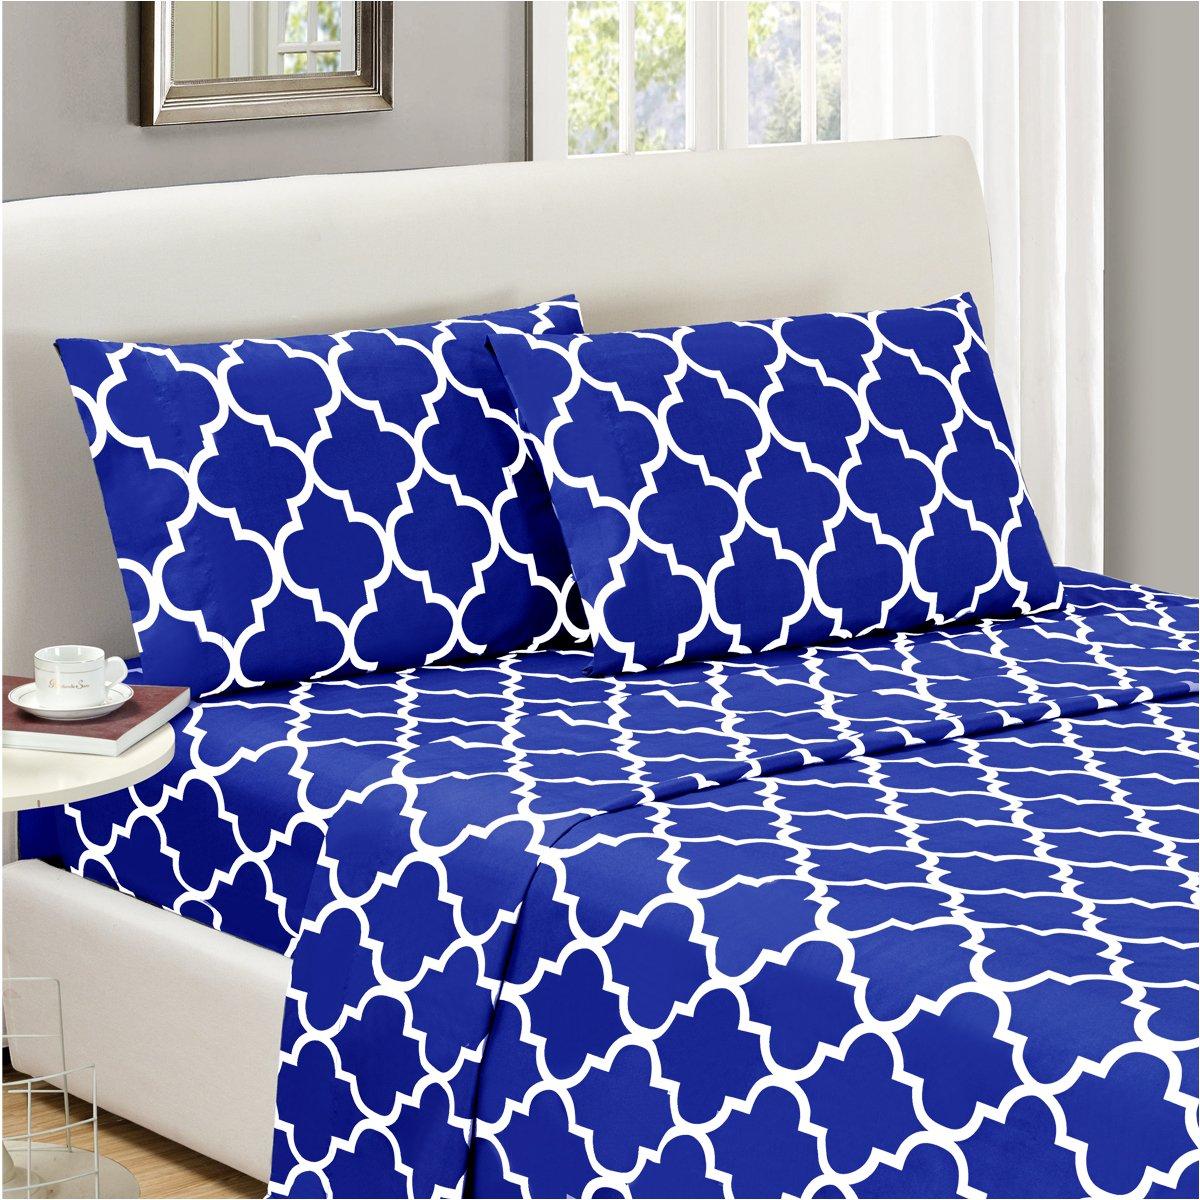 Mellanni Bed Sheet Set Full-Imperial-Blue - HIGHEST QUALITY Brushed Microfiber Printed Bedding